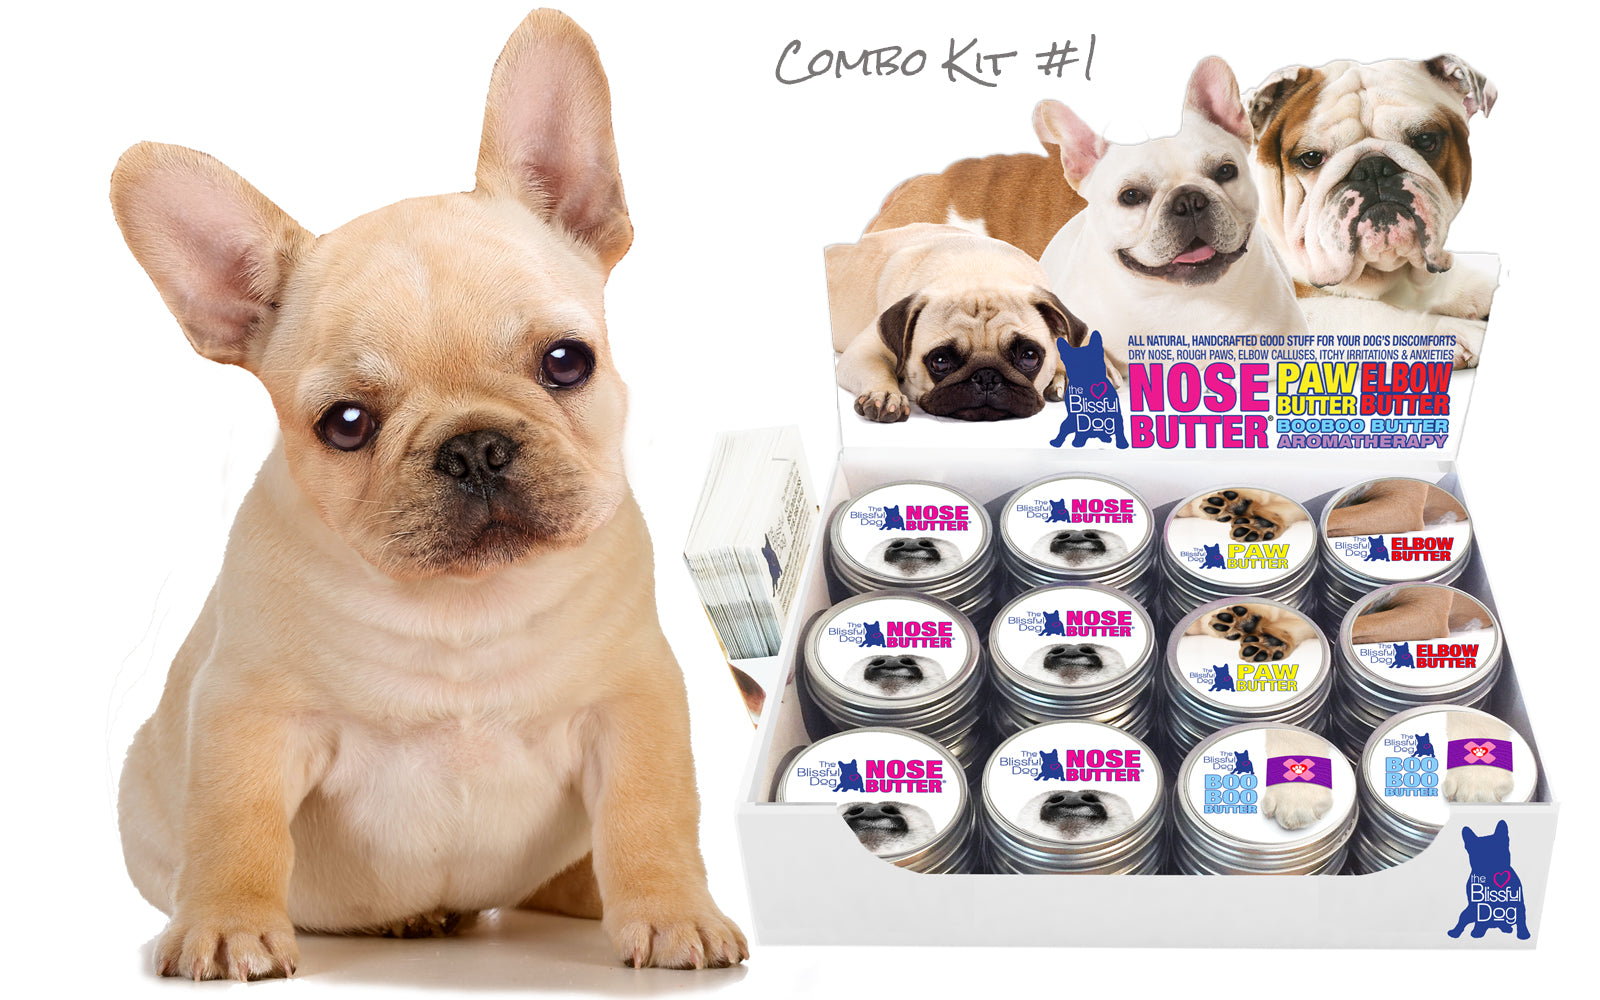 the blissful dog wholesale kit 1